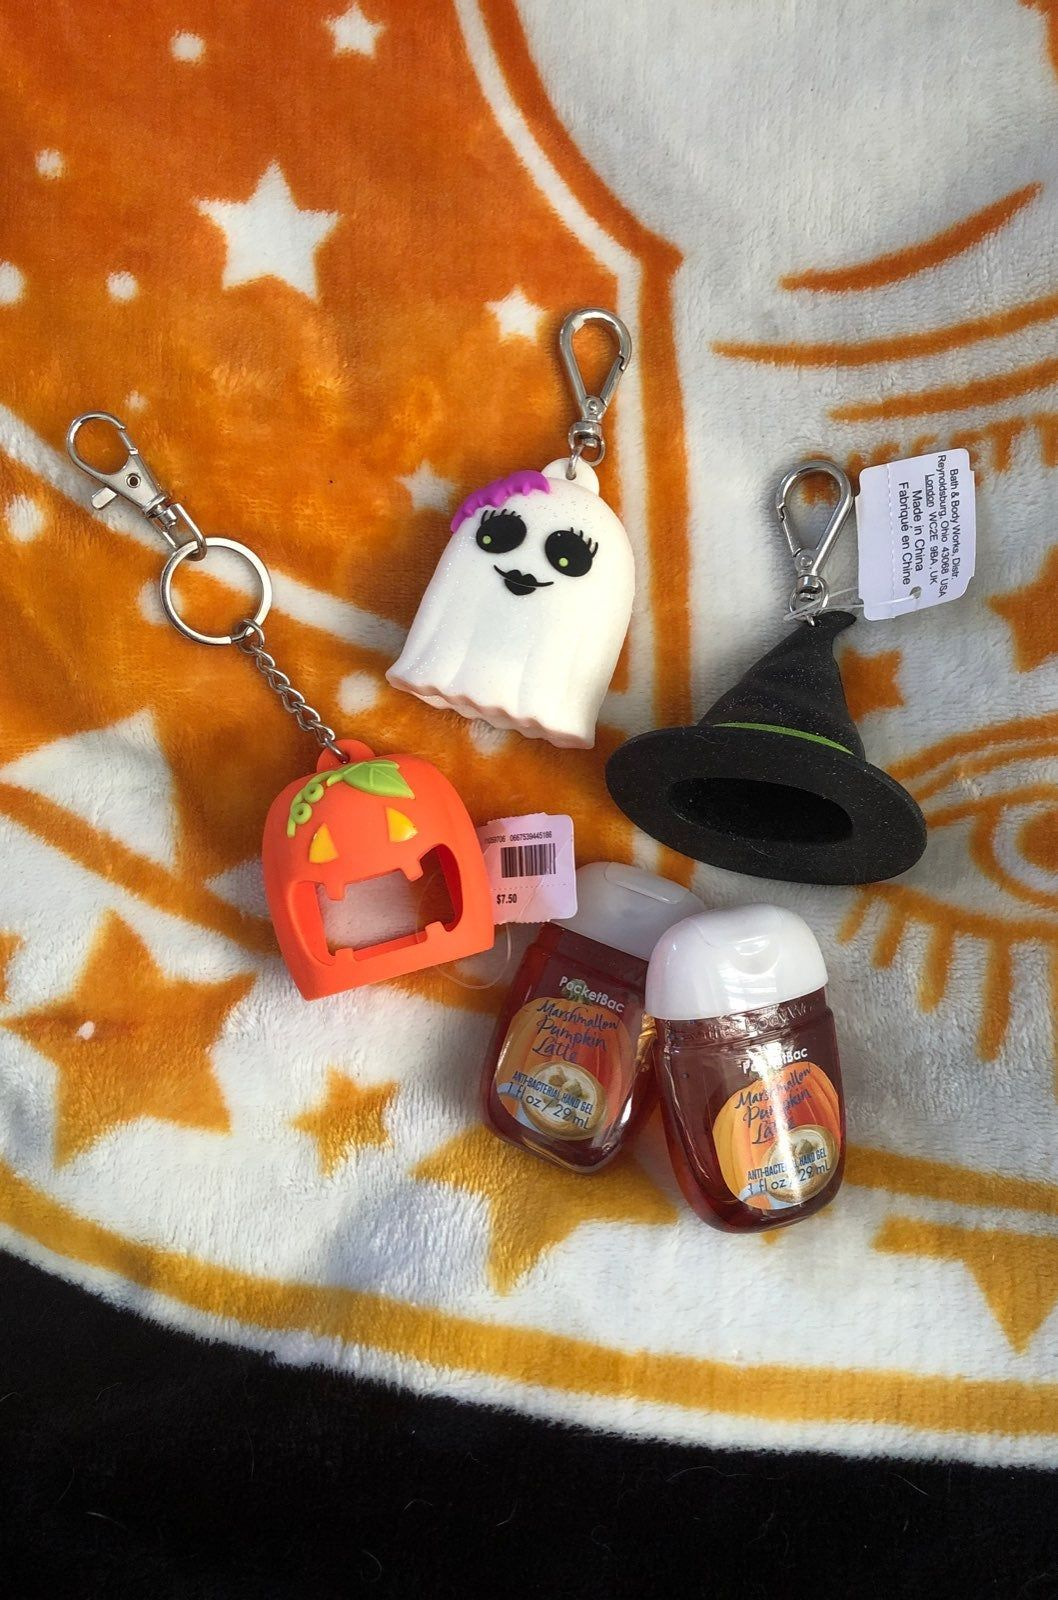 Three Bath And Bodyworks Hand Sanitizer Holders 2 Of The